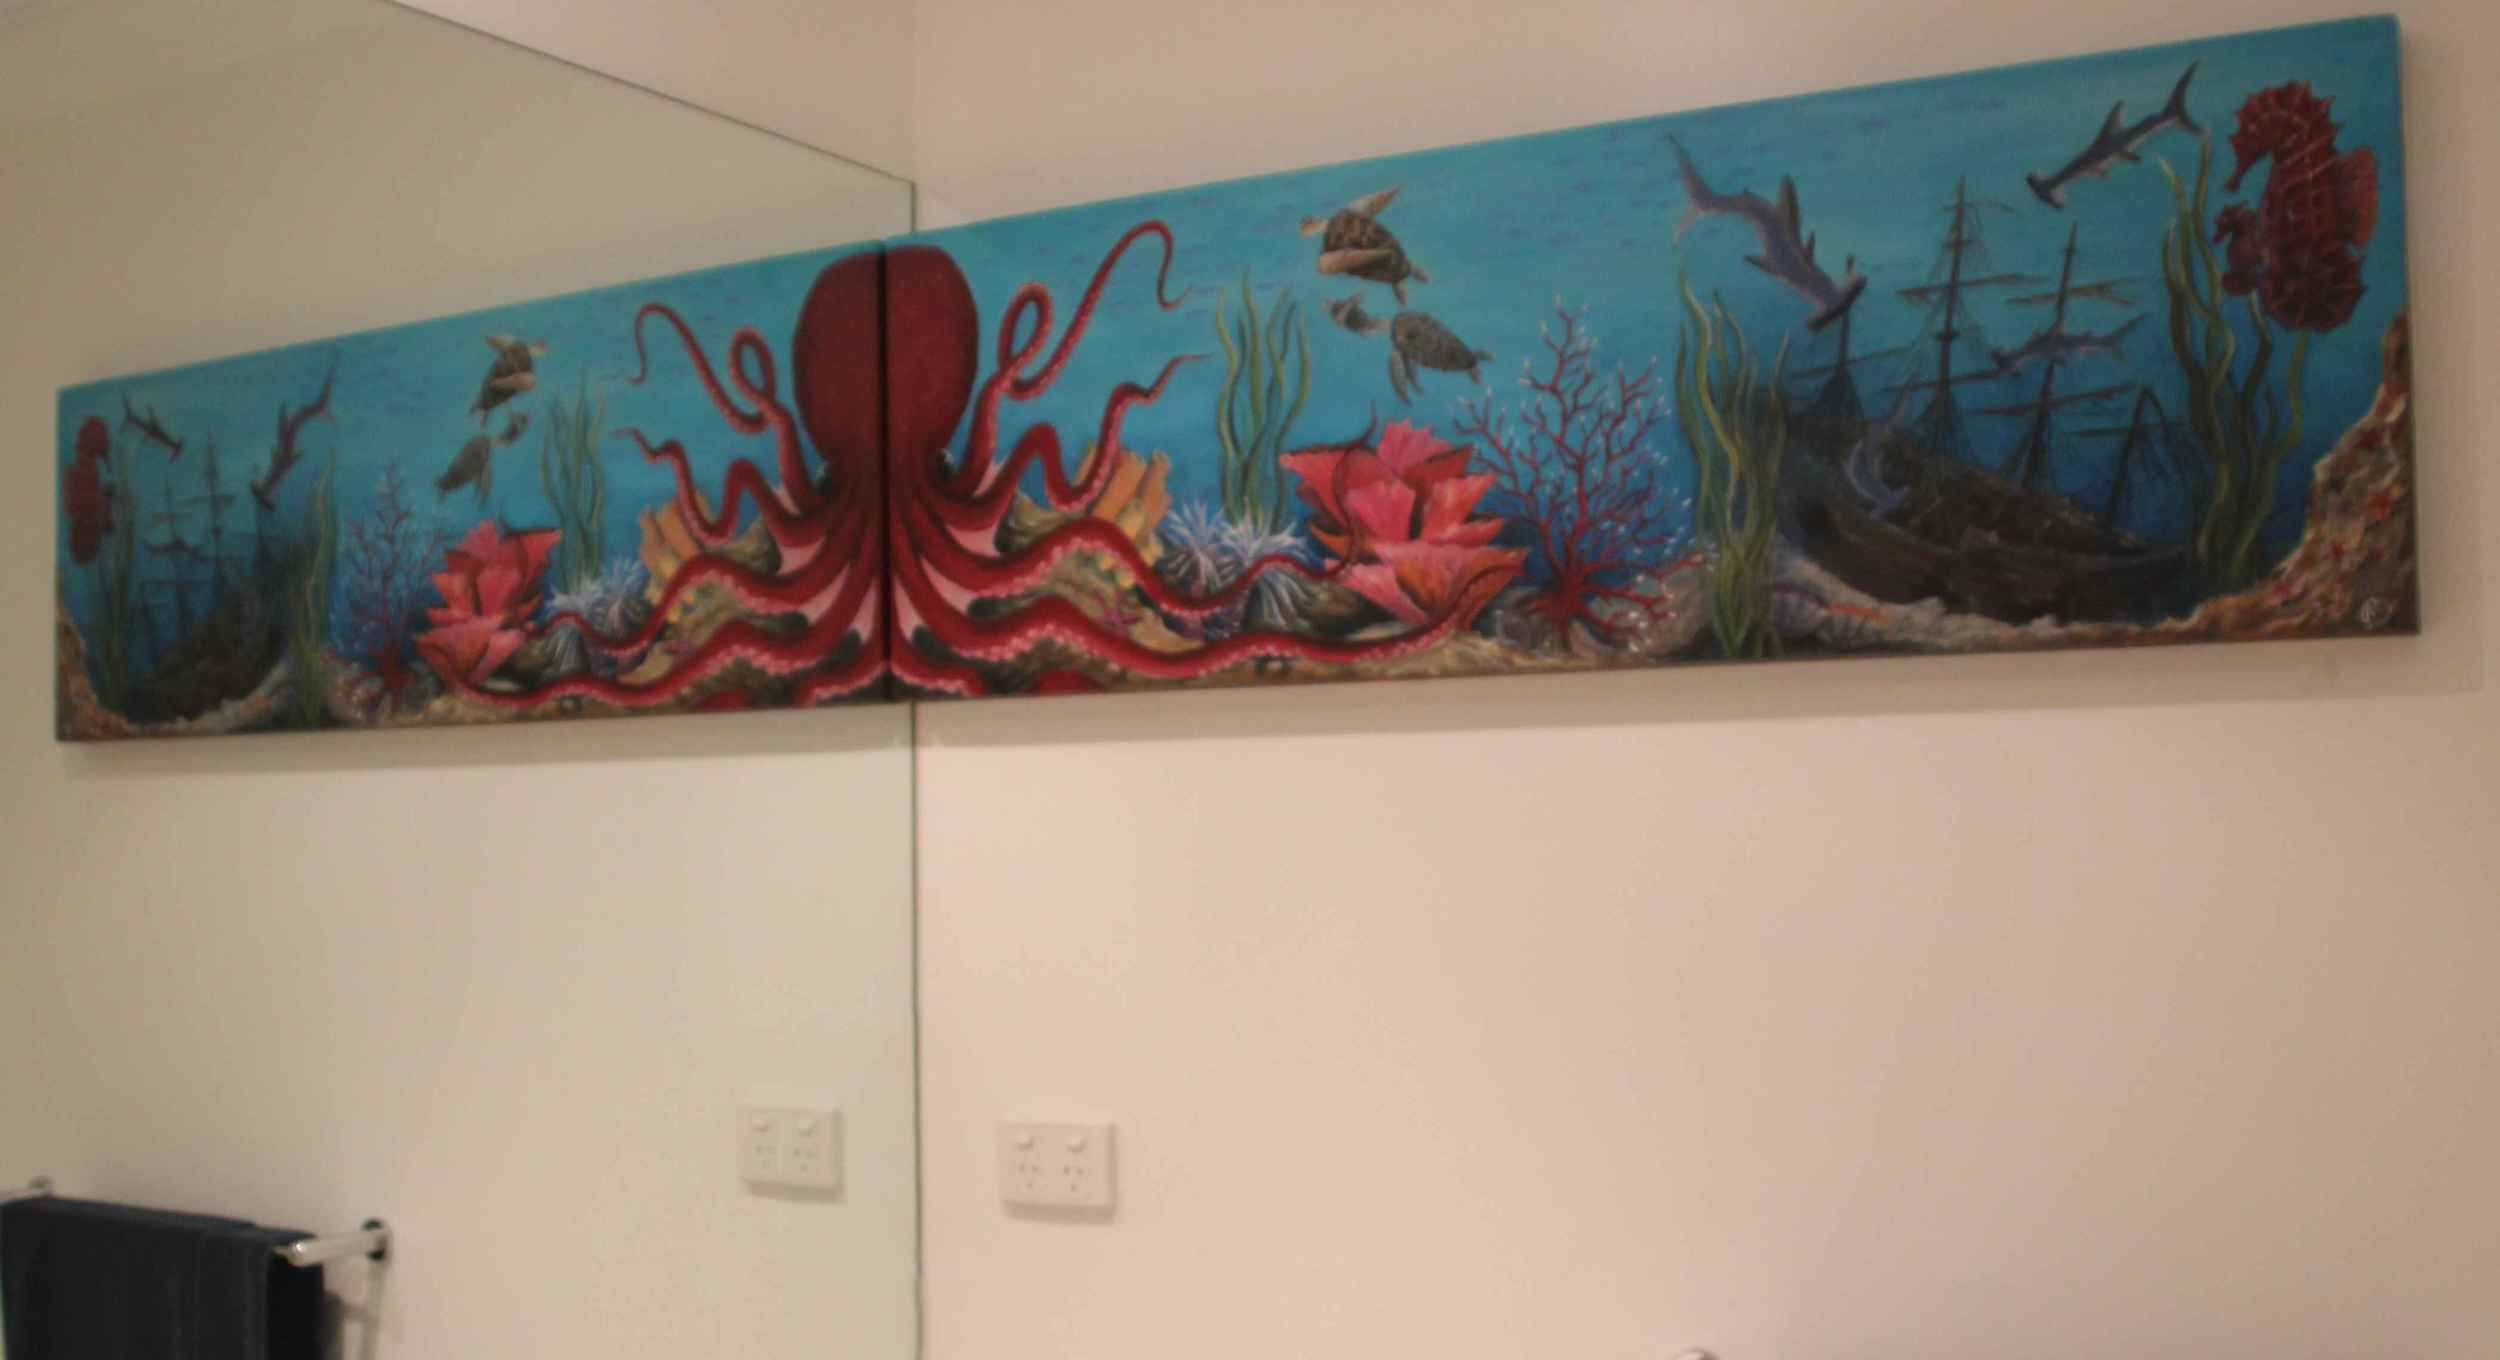 This piece was made to take advantage of the large wall next to the mirror in this bathroom. The idea firstly started with the octopus reflecting in the mirror to become full size, with an underwater world behind it. This was a really enjoyable piece to create and to research all the different marine creatures / coral that fill up the canvas.